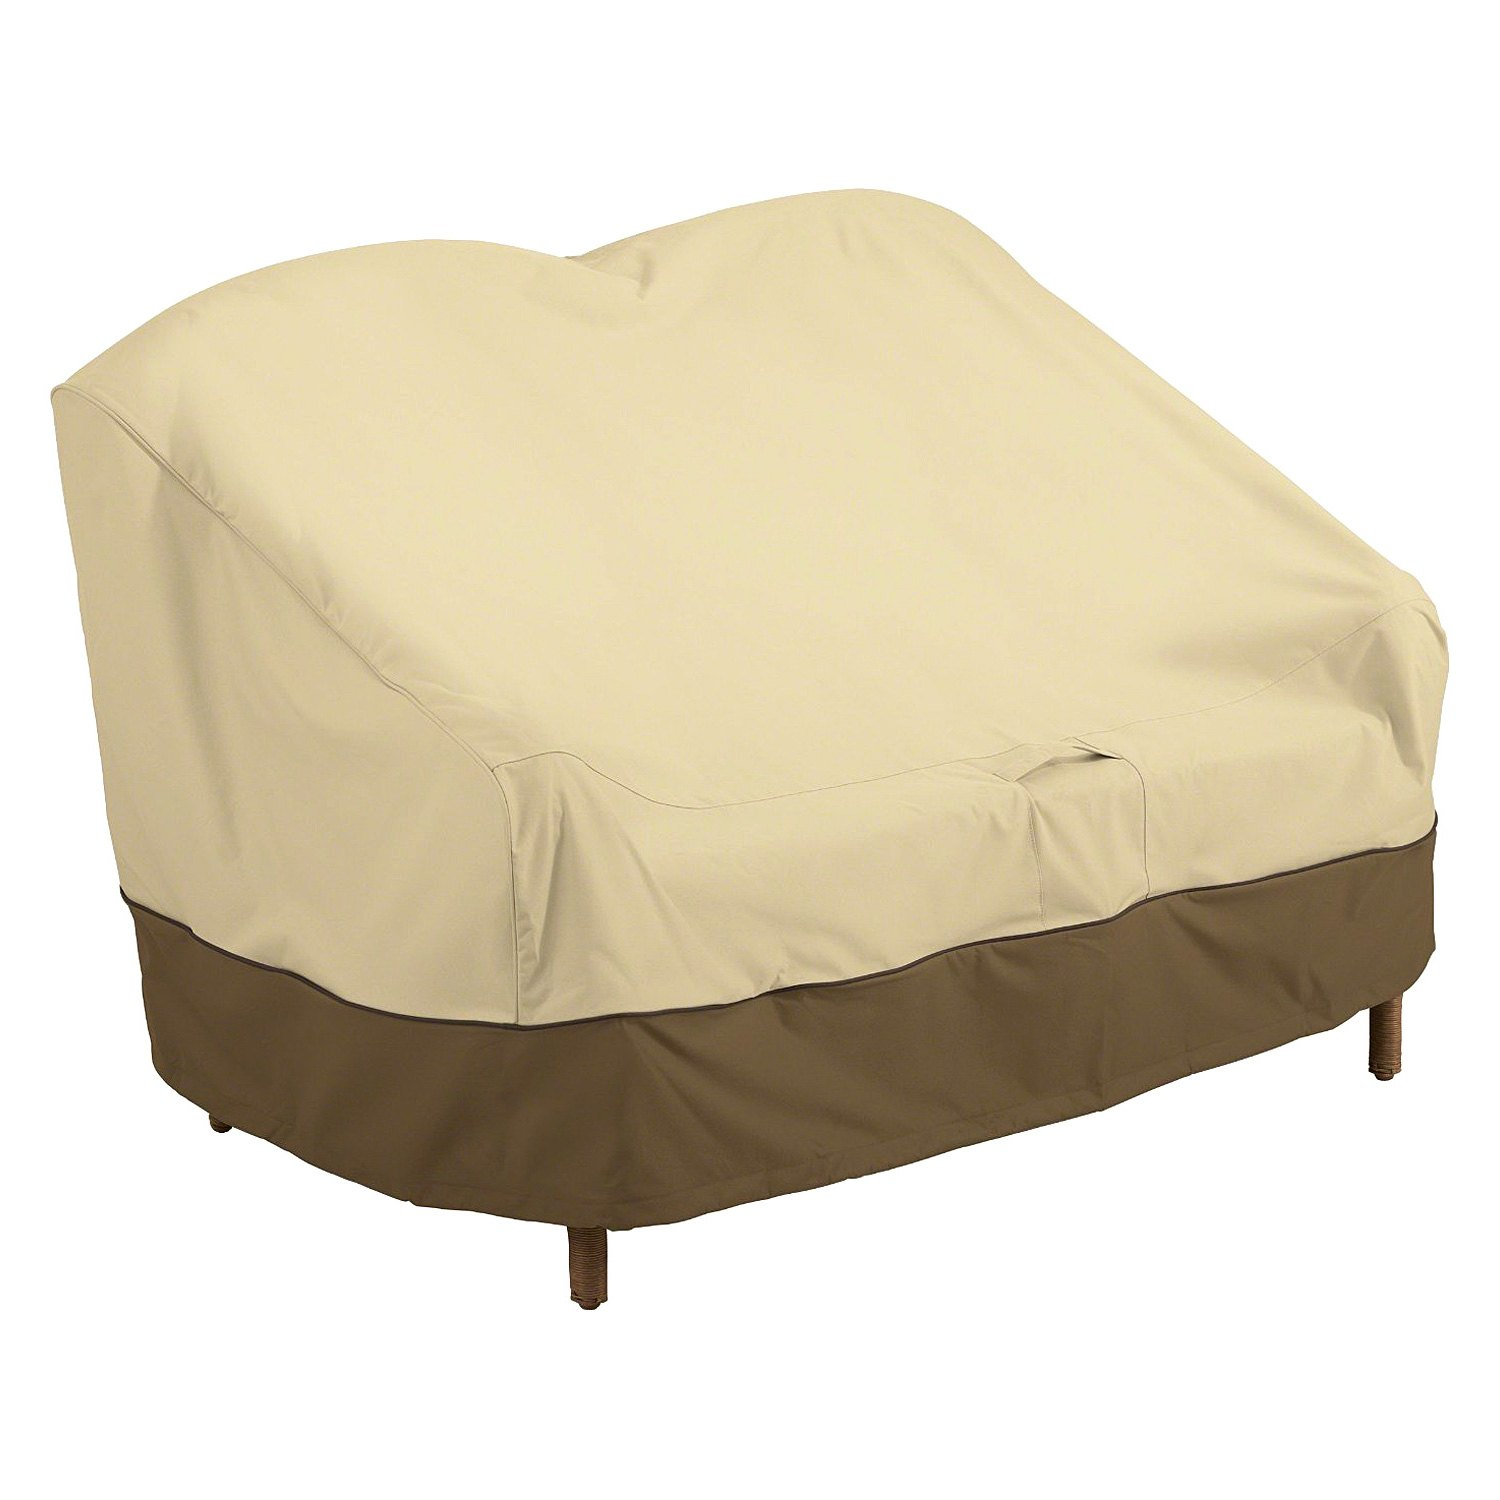 Classic Accessories Patio Chair Covers Classic Accessories